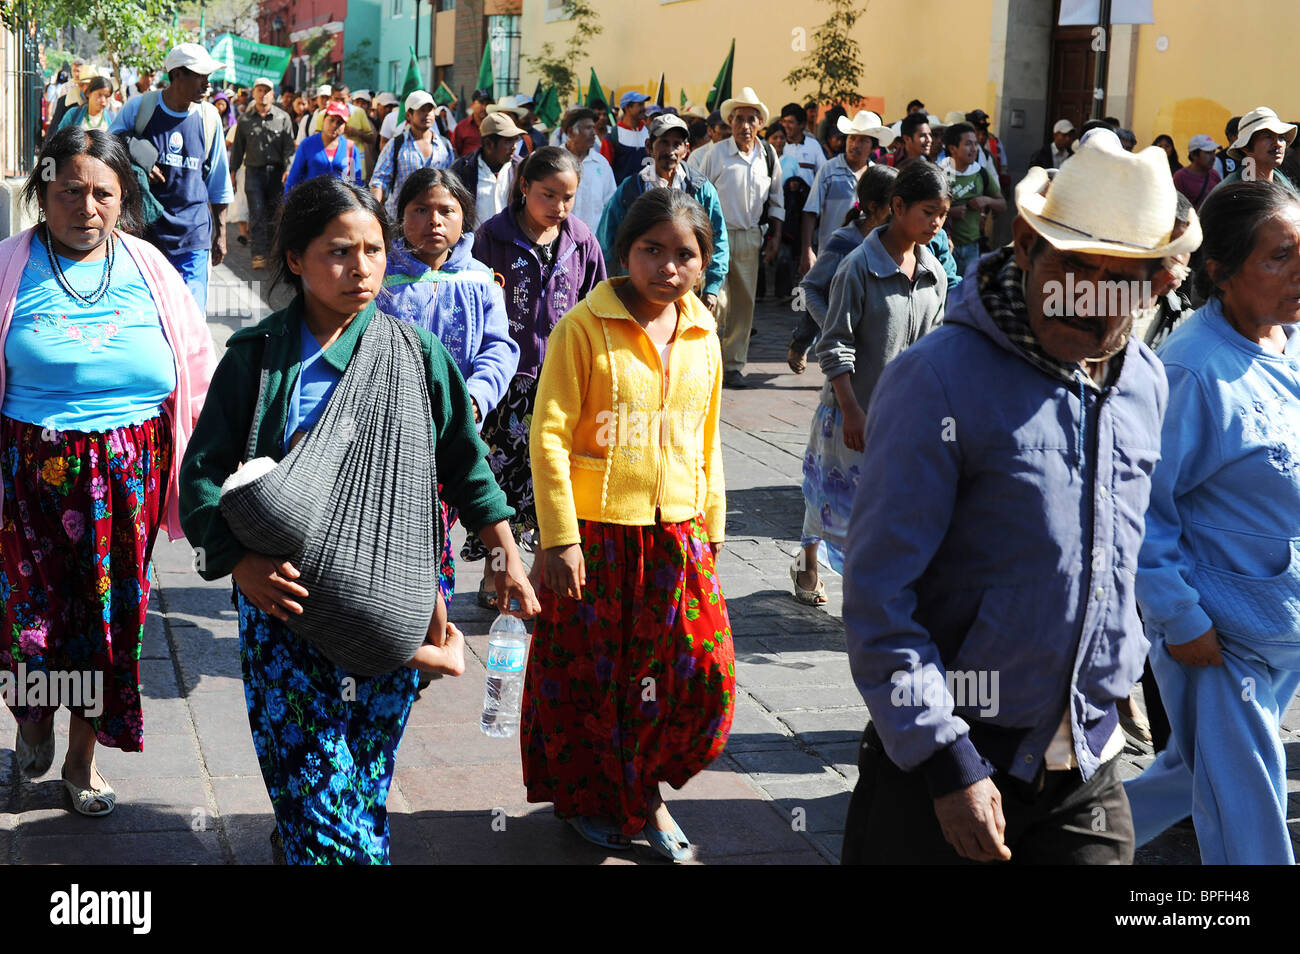 Protesters march to the Zocola to demand for Government reforms and help for the poor. Oaxaca, Mexico - Stock Image